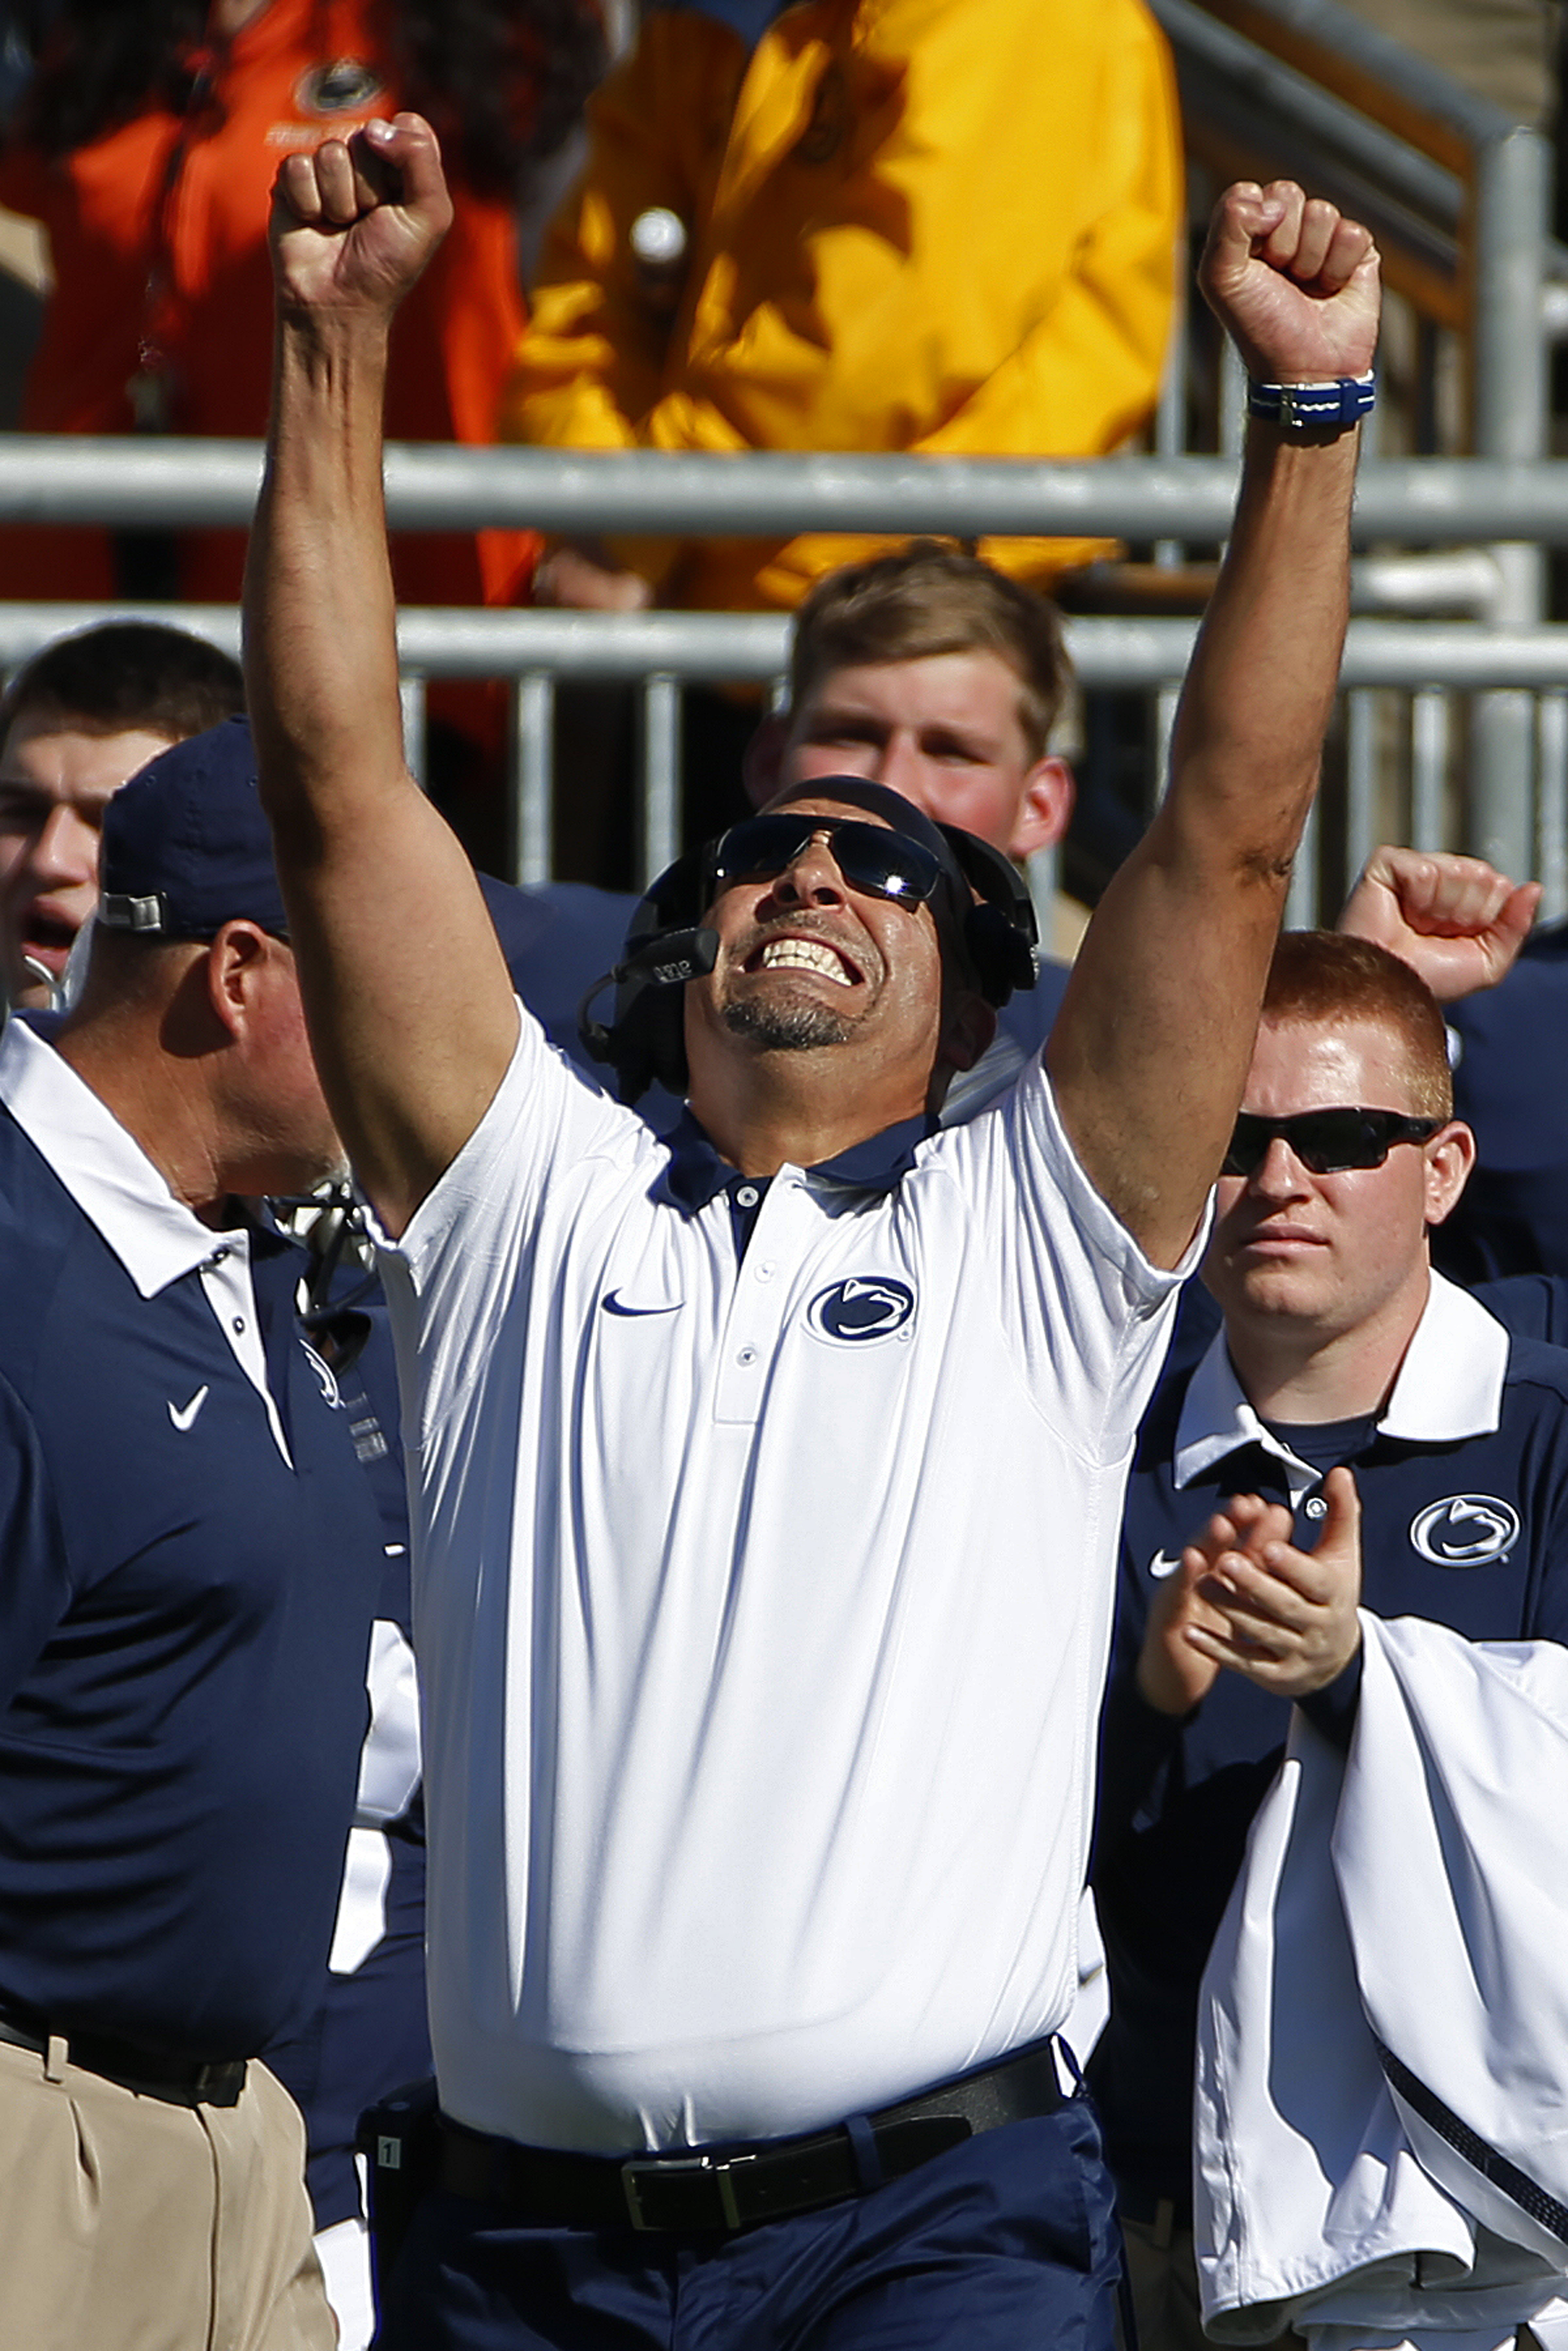 Penn State head coach James Franklin celebrates a 5-yard touchdown run by Penn State quarterback Christian Hackenberg (14) during the second half of an NCAA college football game against Indiana in State College, Pa., Saturday, Oct. 10, 2015. (AP Photo/Ge